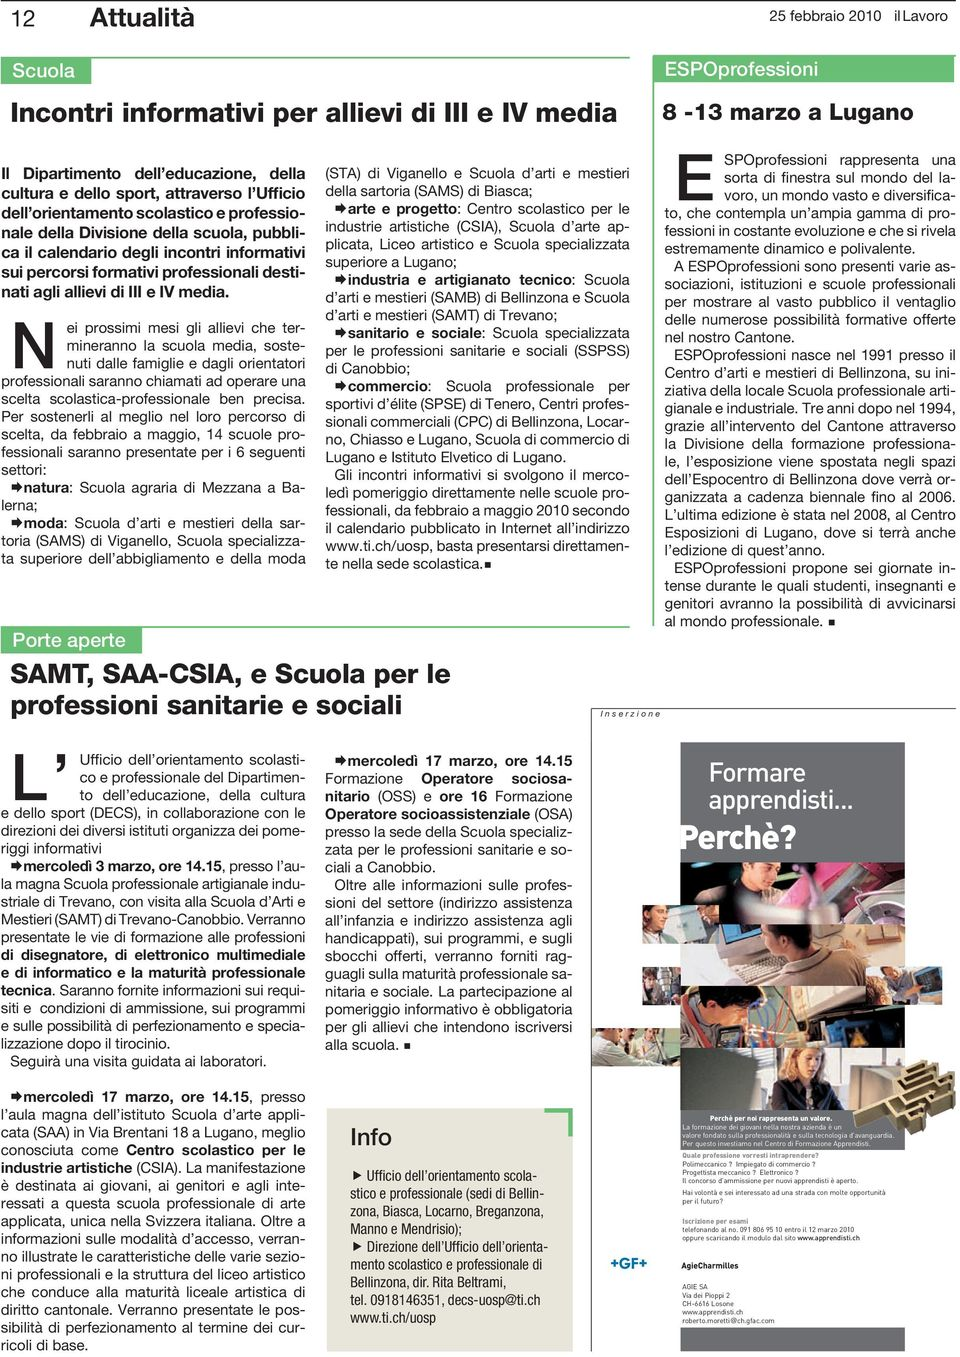 allievi di III e IV media.